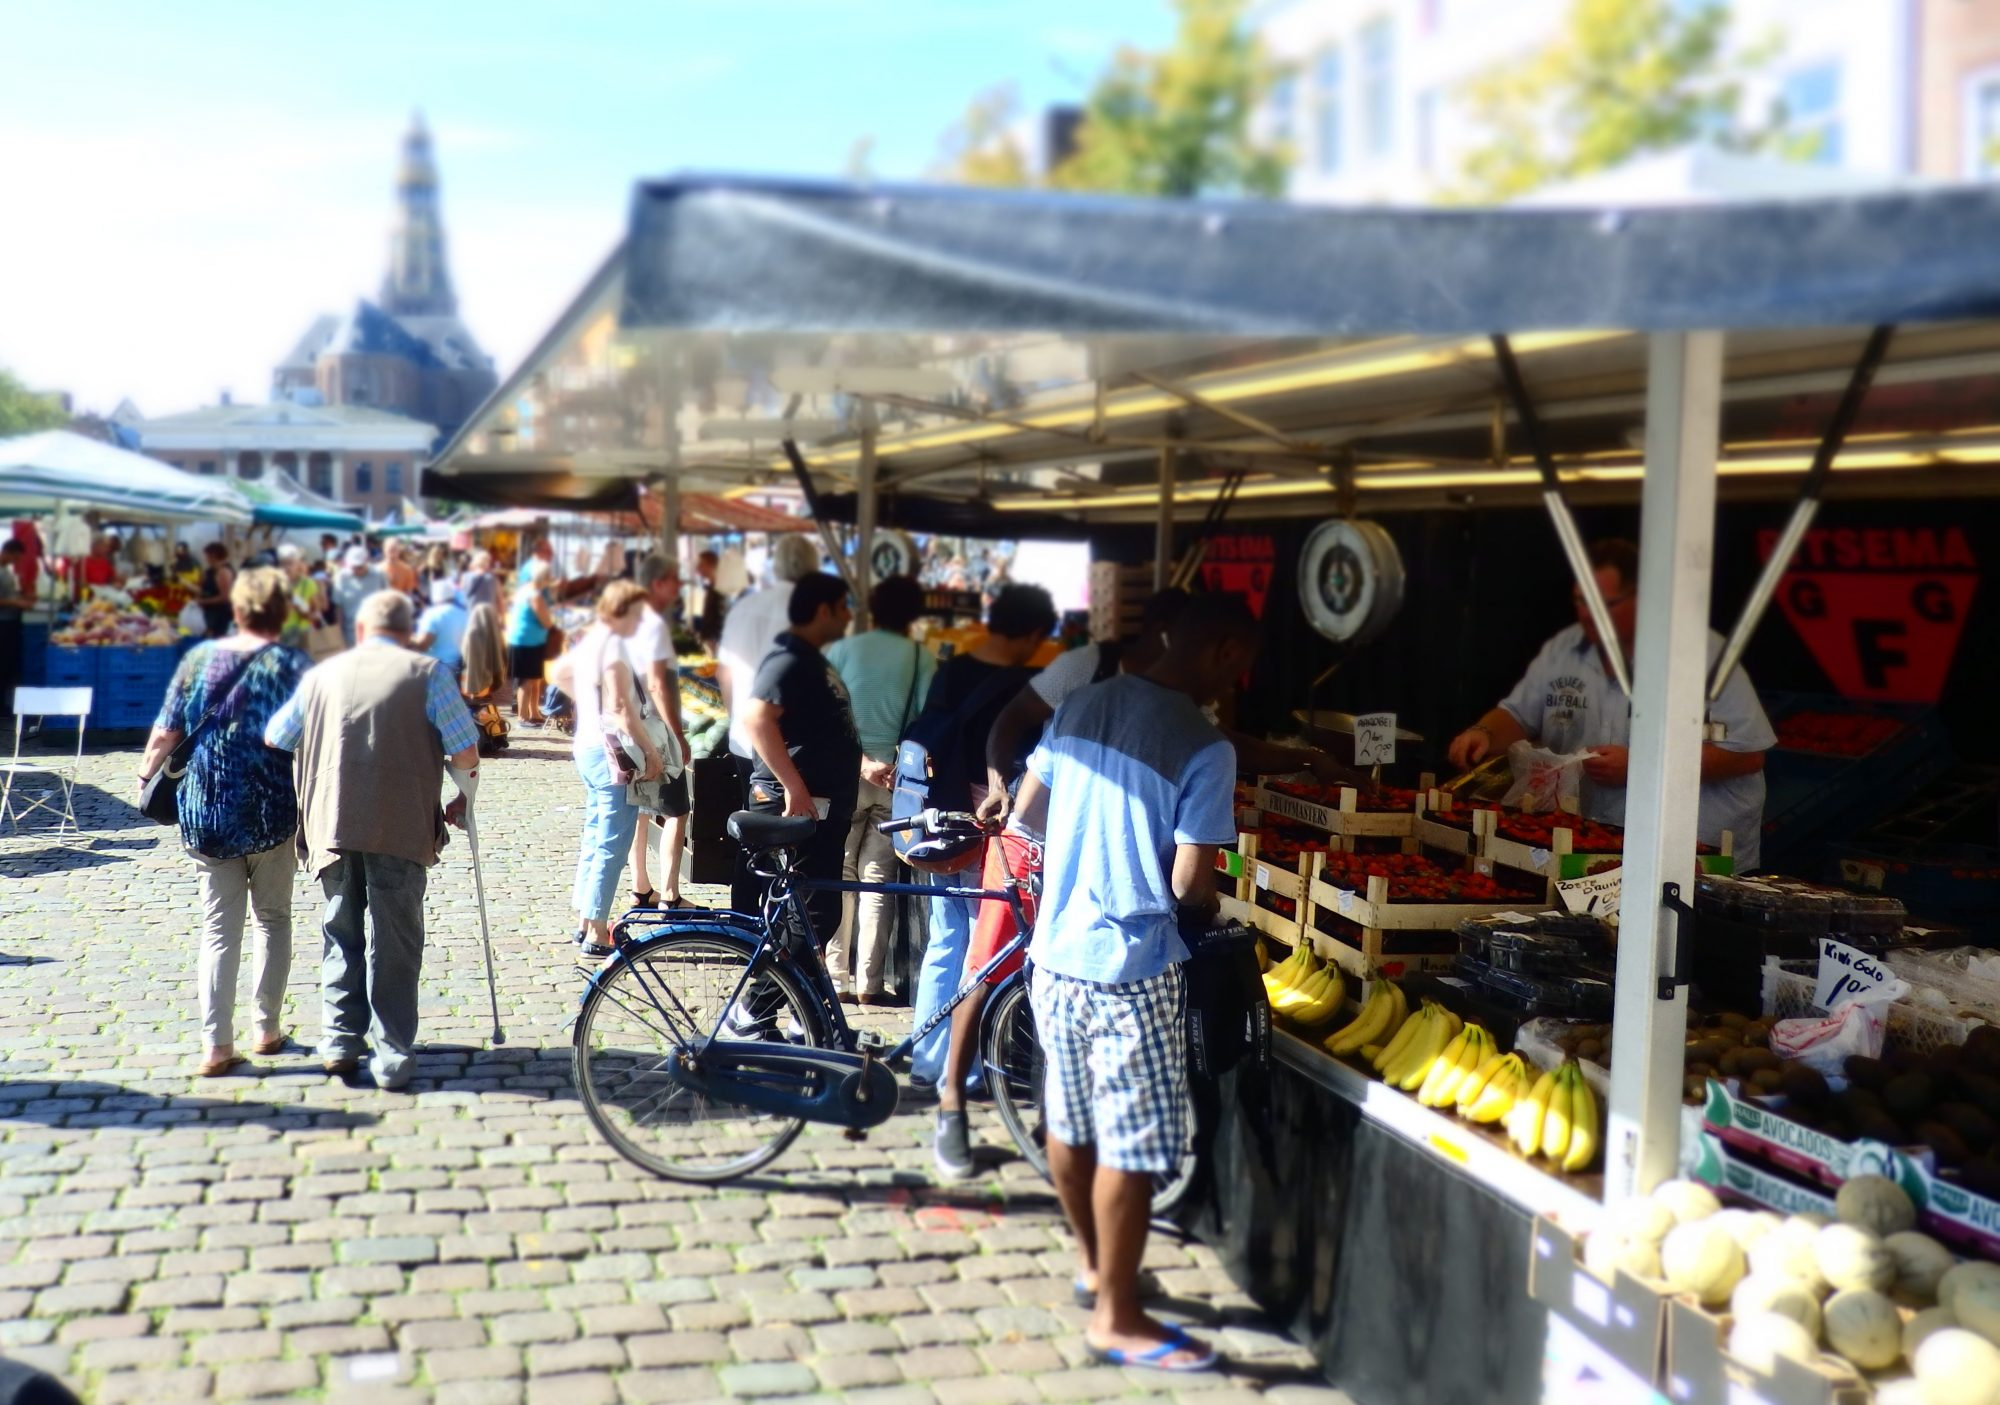 A market stall here at home in Groningen, the Netherlands. Visit the market at any travel destination!